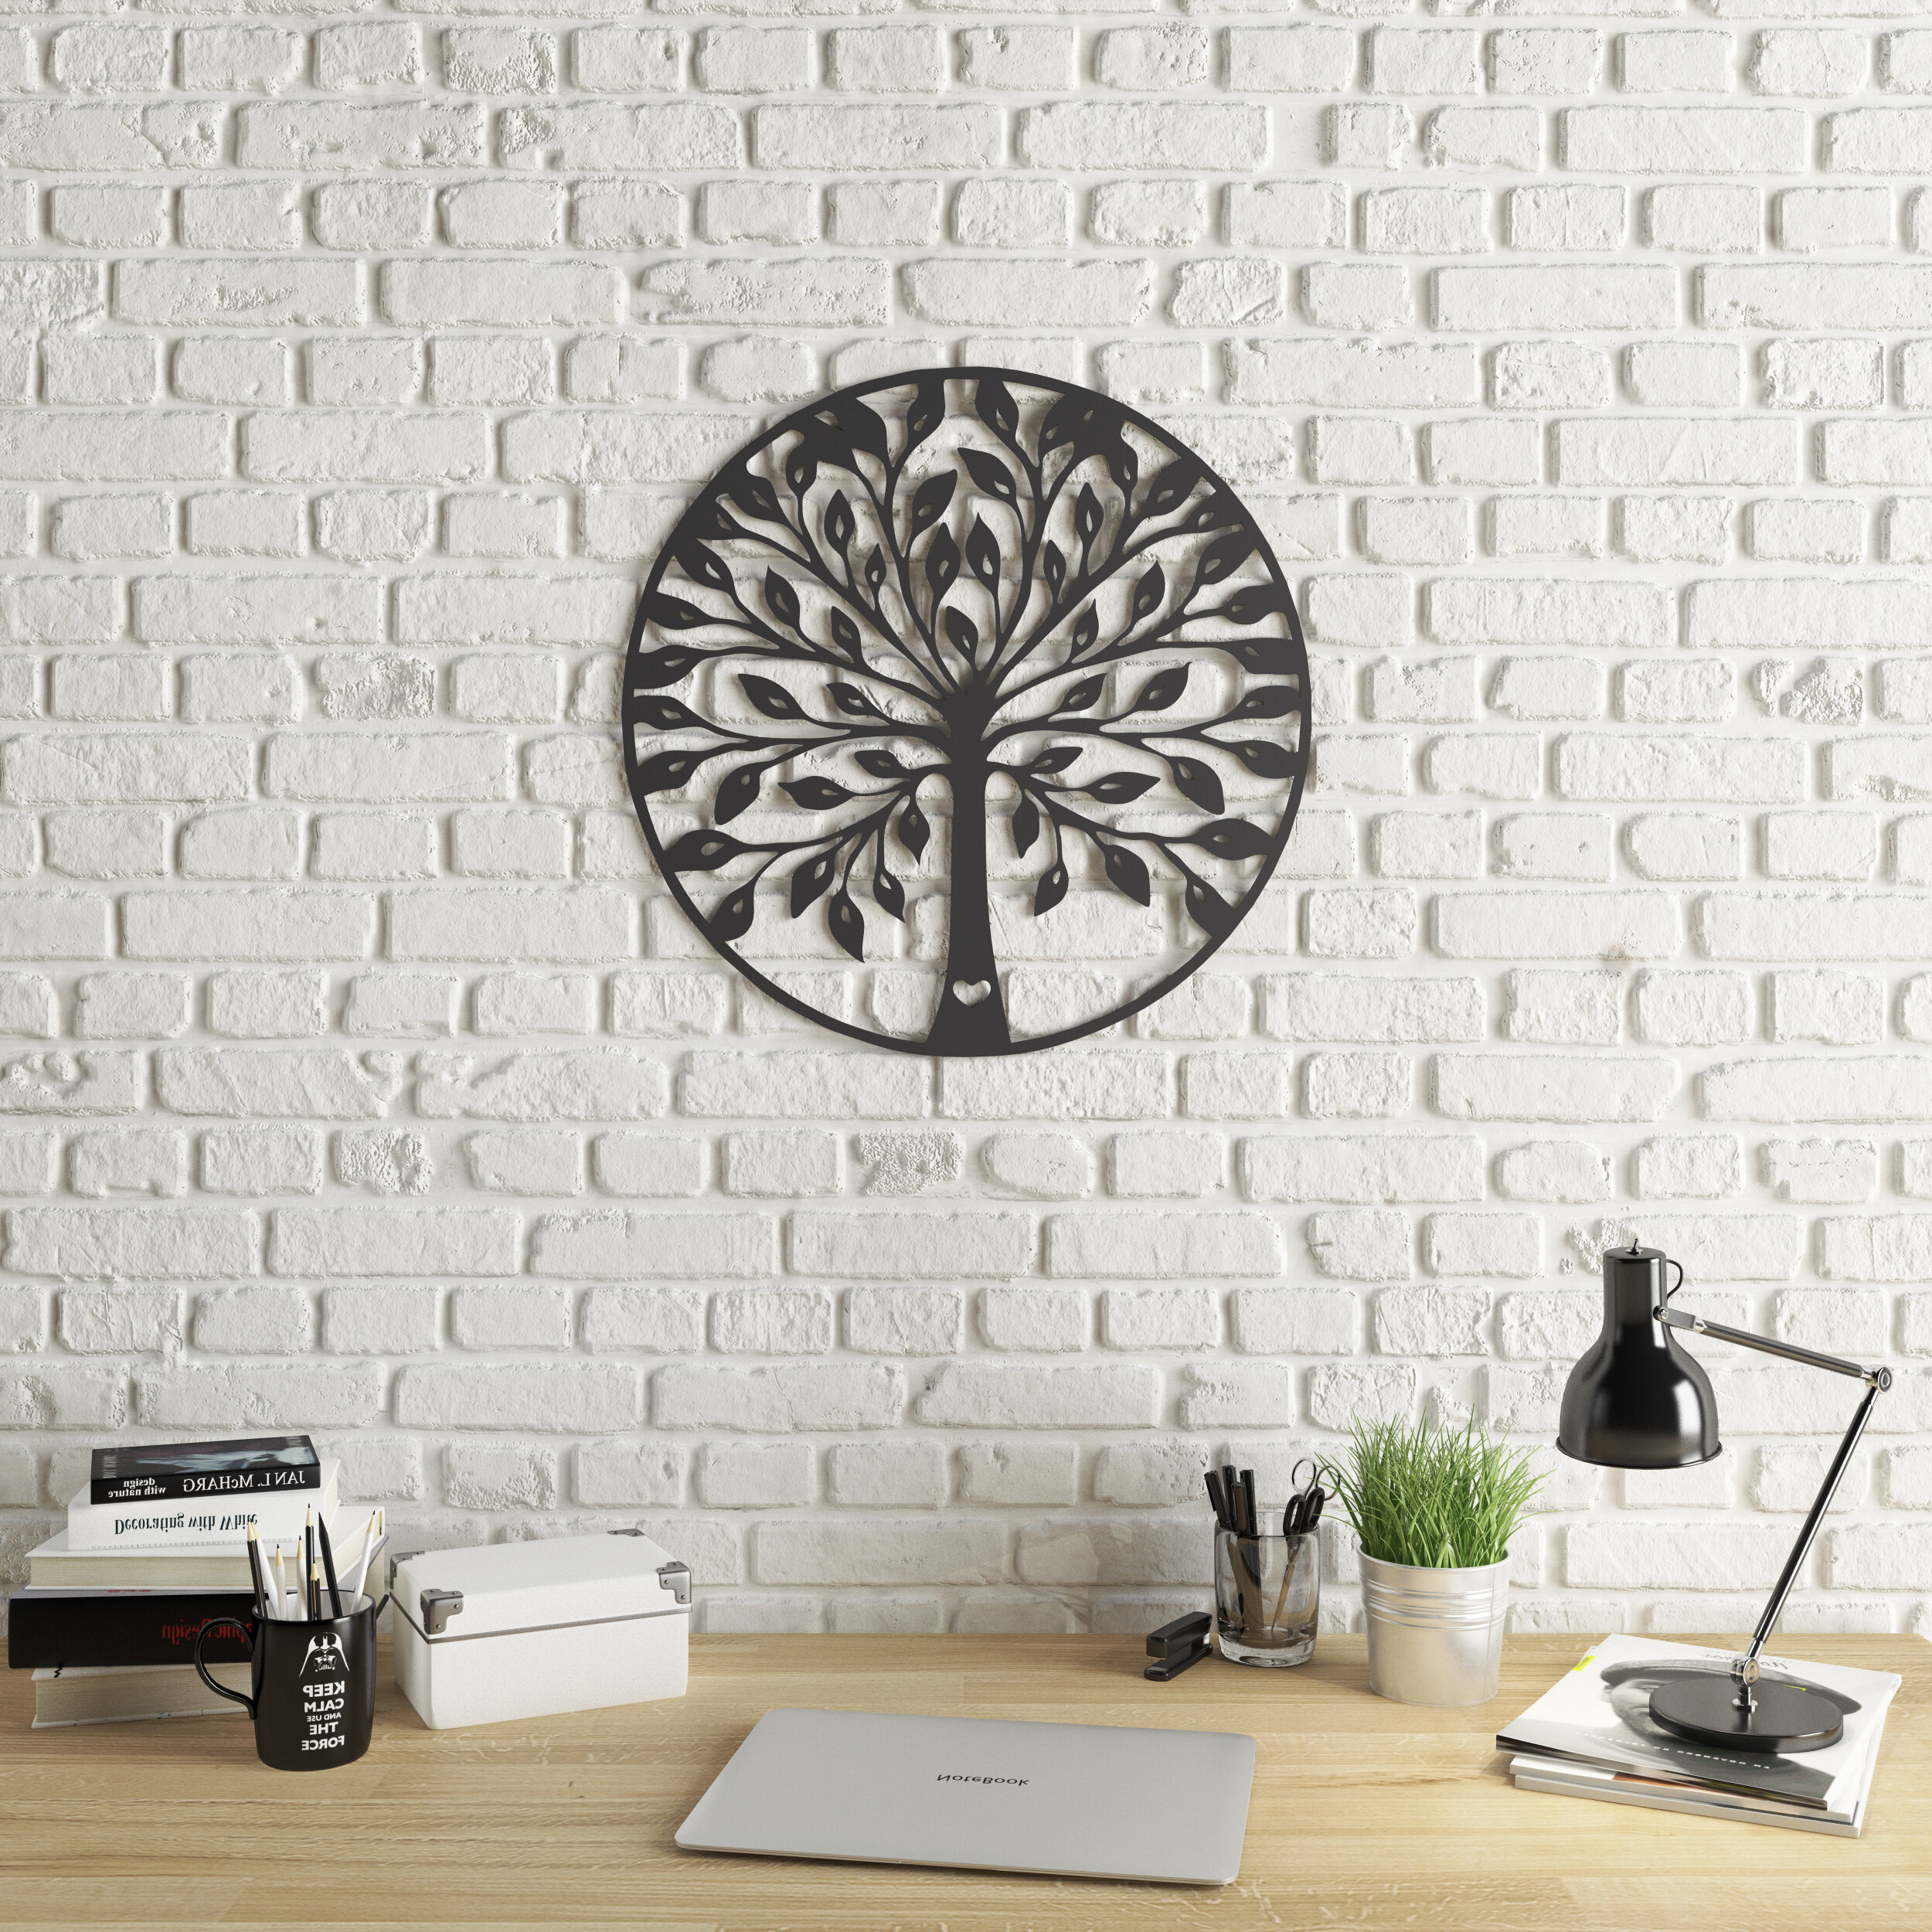 Abstract Tree Wall Décor By Winston Porter Regarding Most Recent Tree Of Life Wall Décor (View 8 of 20)